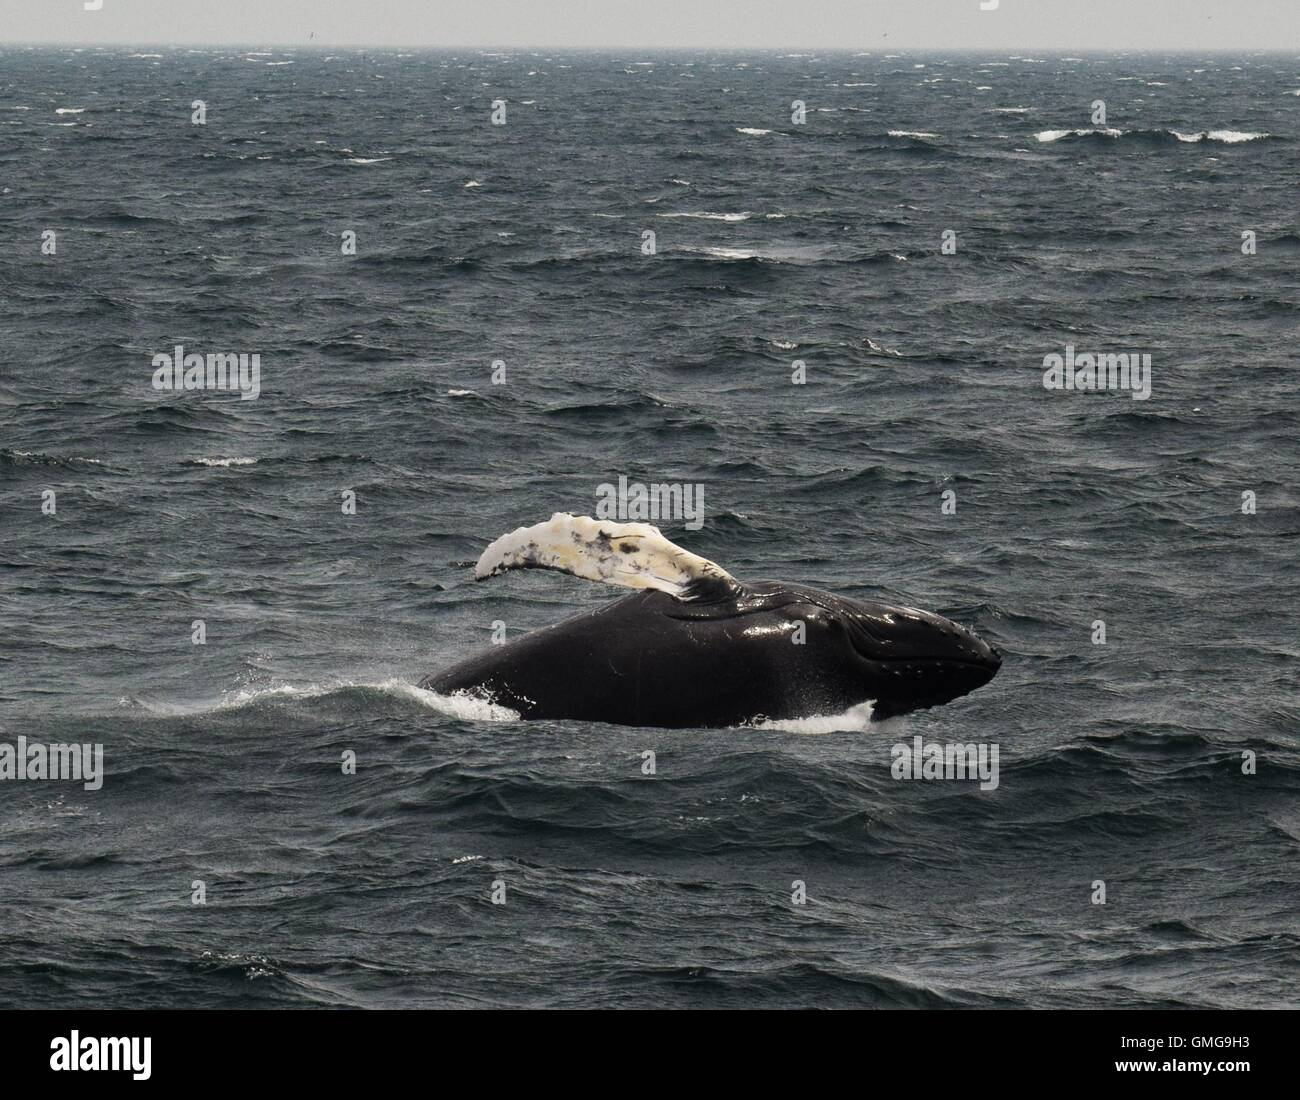 Humpback whales off the coast  of Massachusetts, pectoral slapping , breaching, diving - Stock Image